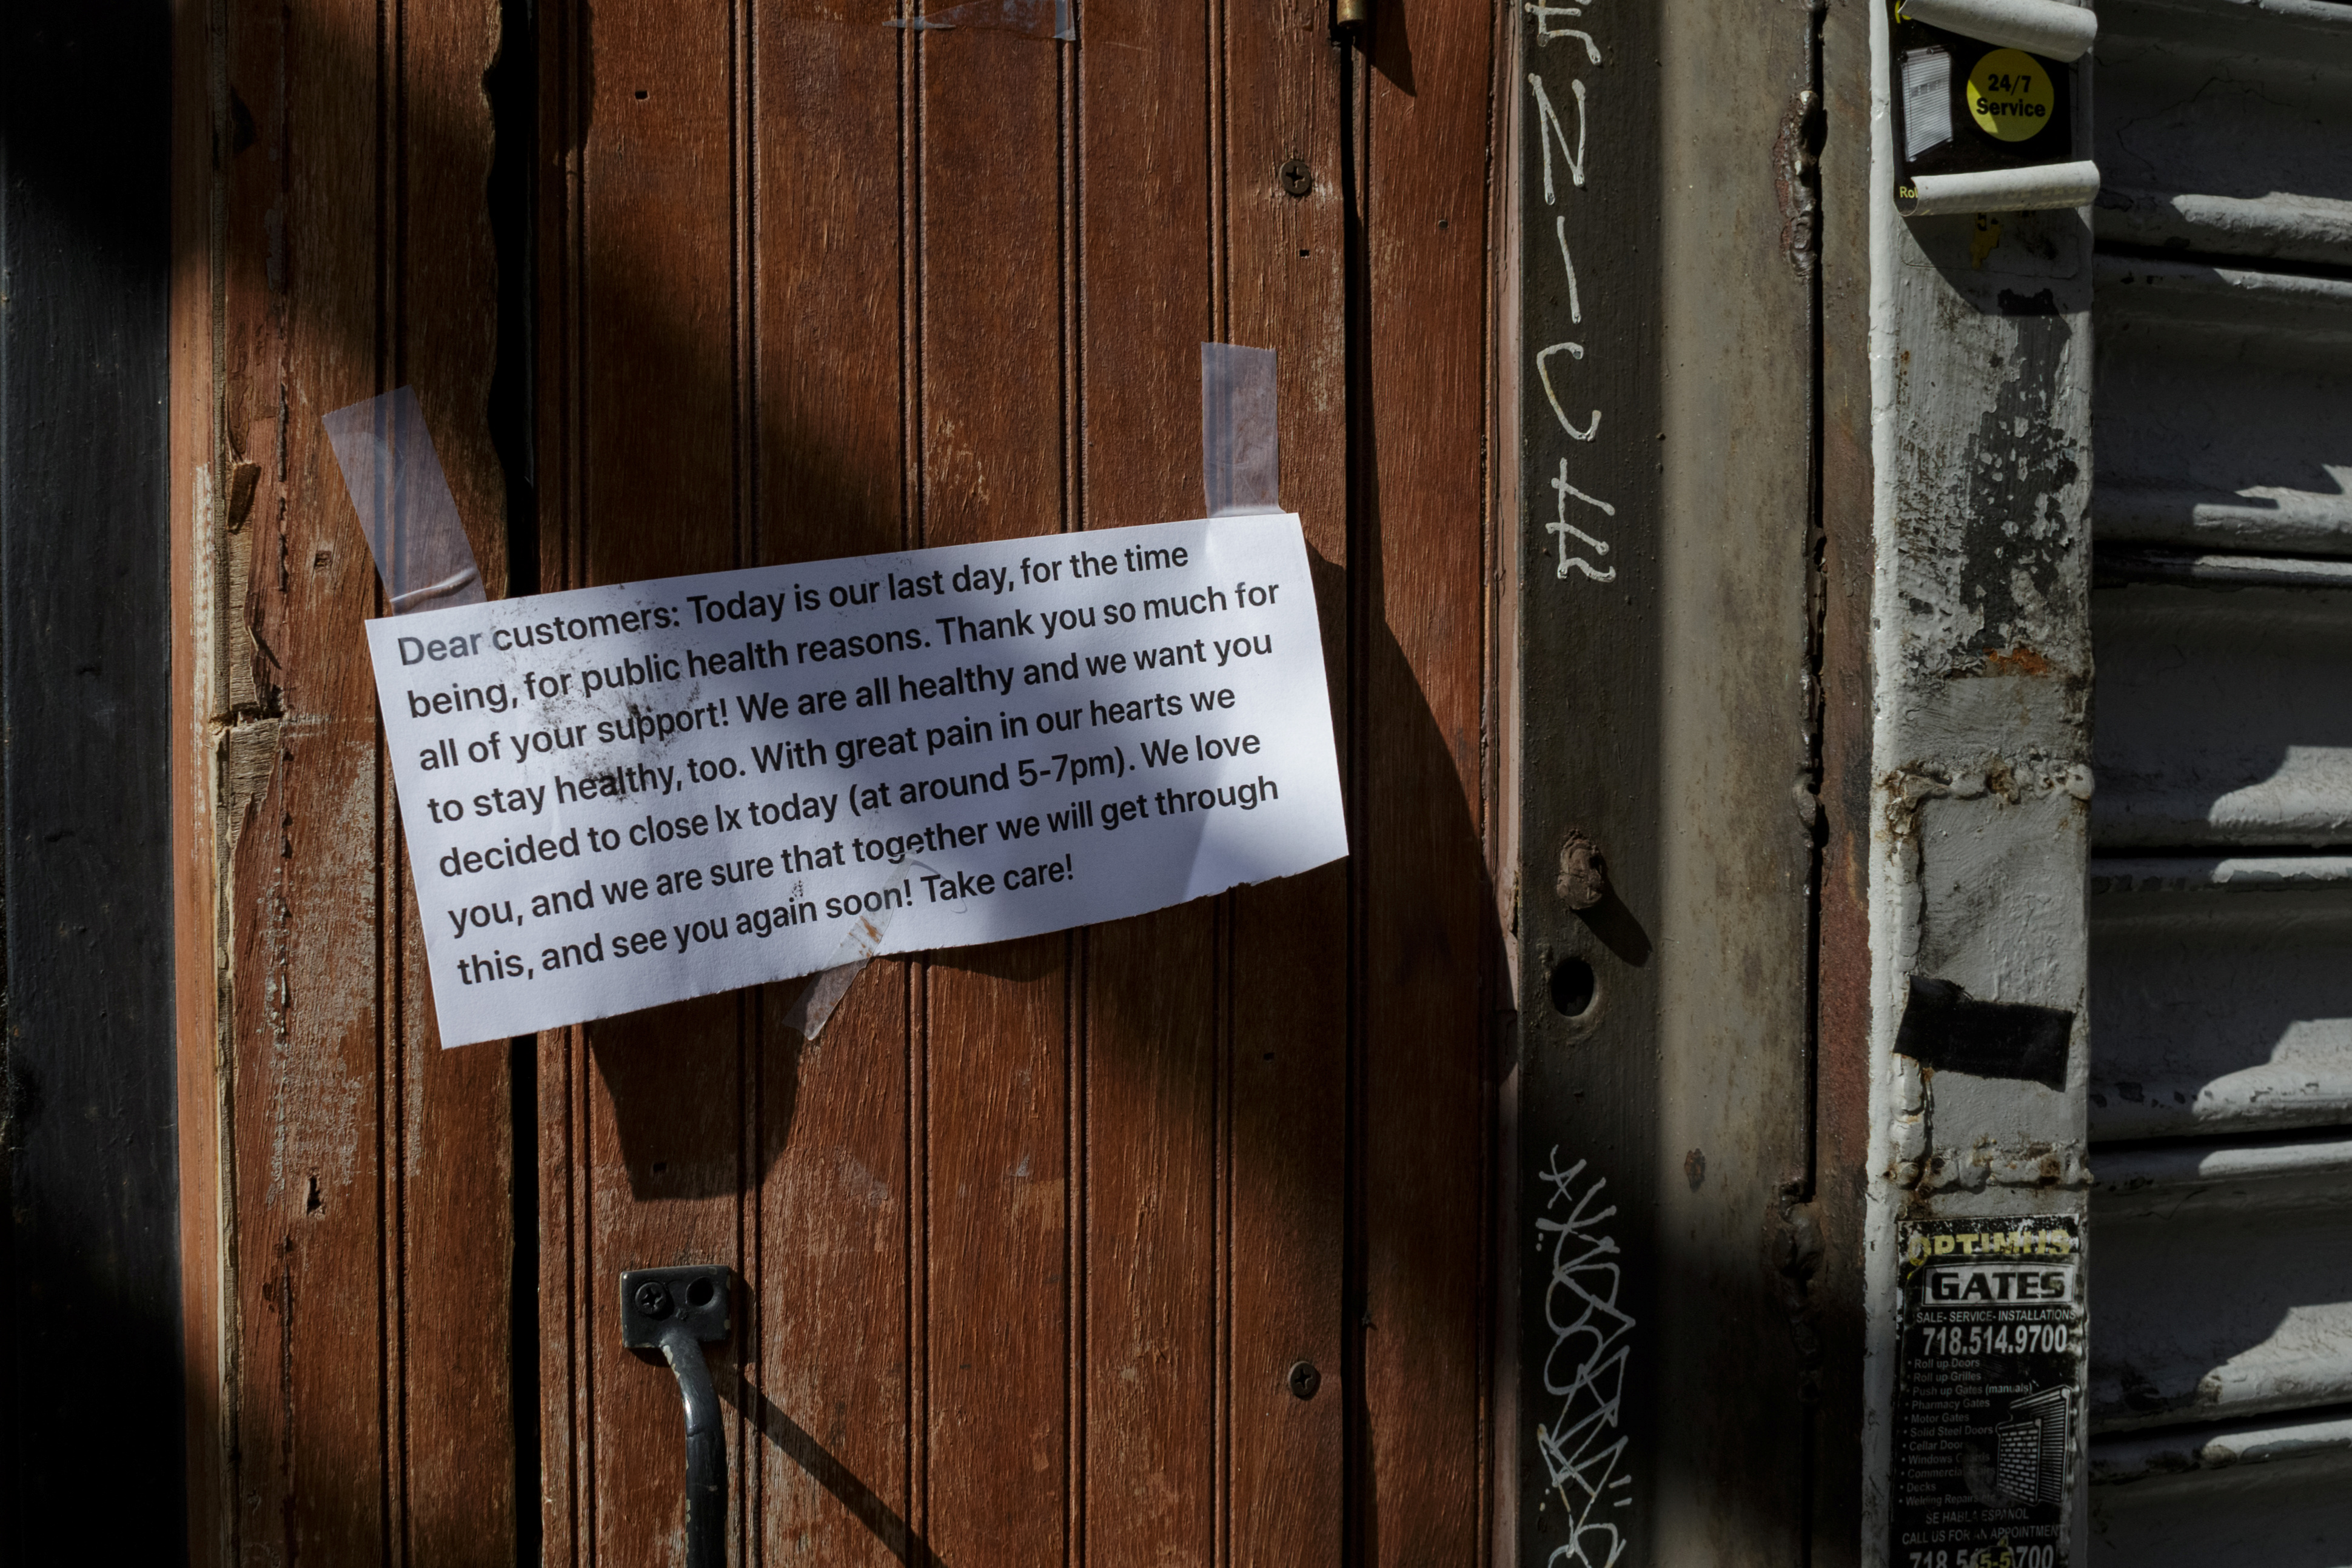 Printed signs are taped to the outside of Ix restaurant announcing its closure, in the Brooklyn borough of New York City, U.S., on April 2, 2020 amid the CCP virus outbreak. (Anna Watts/Reuters)